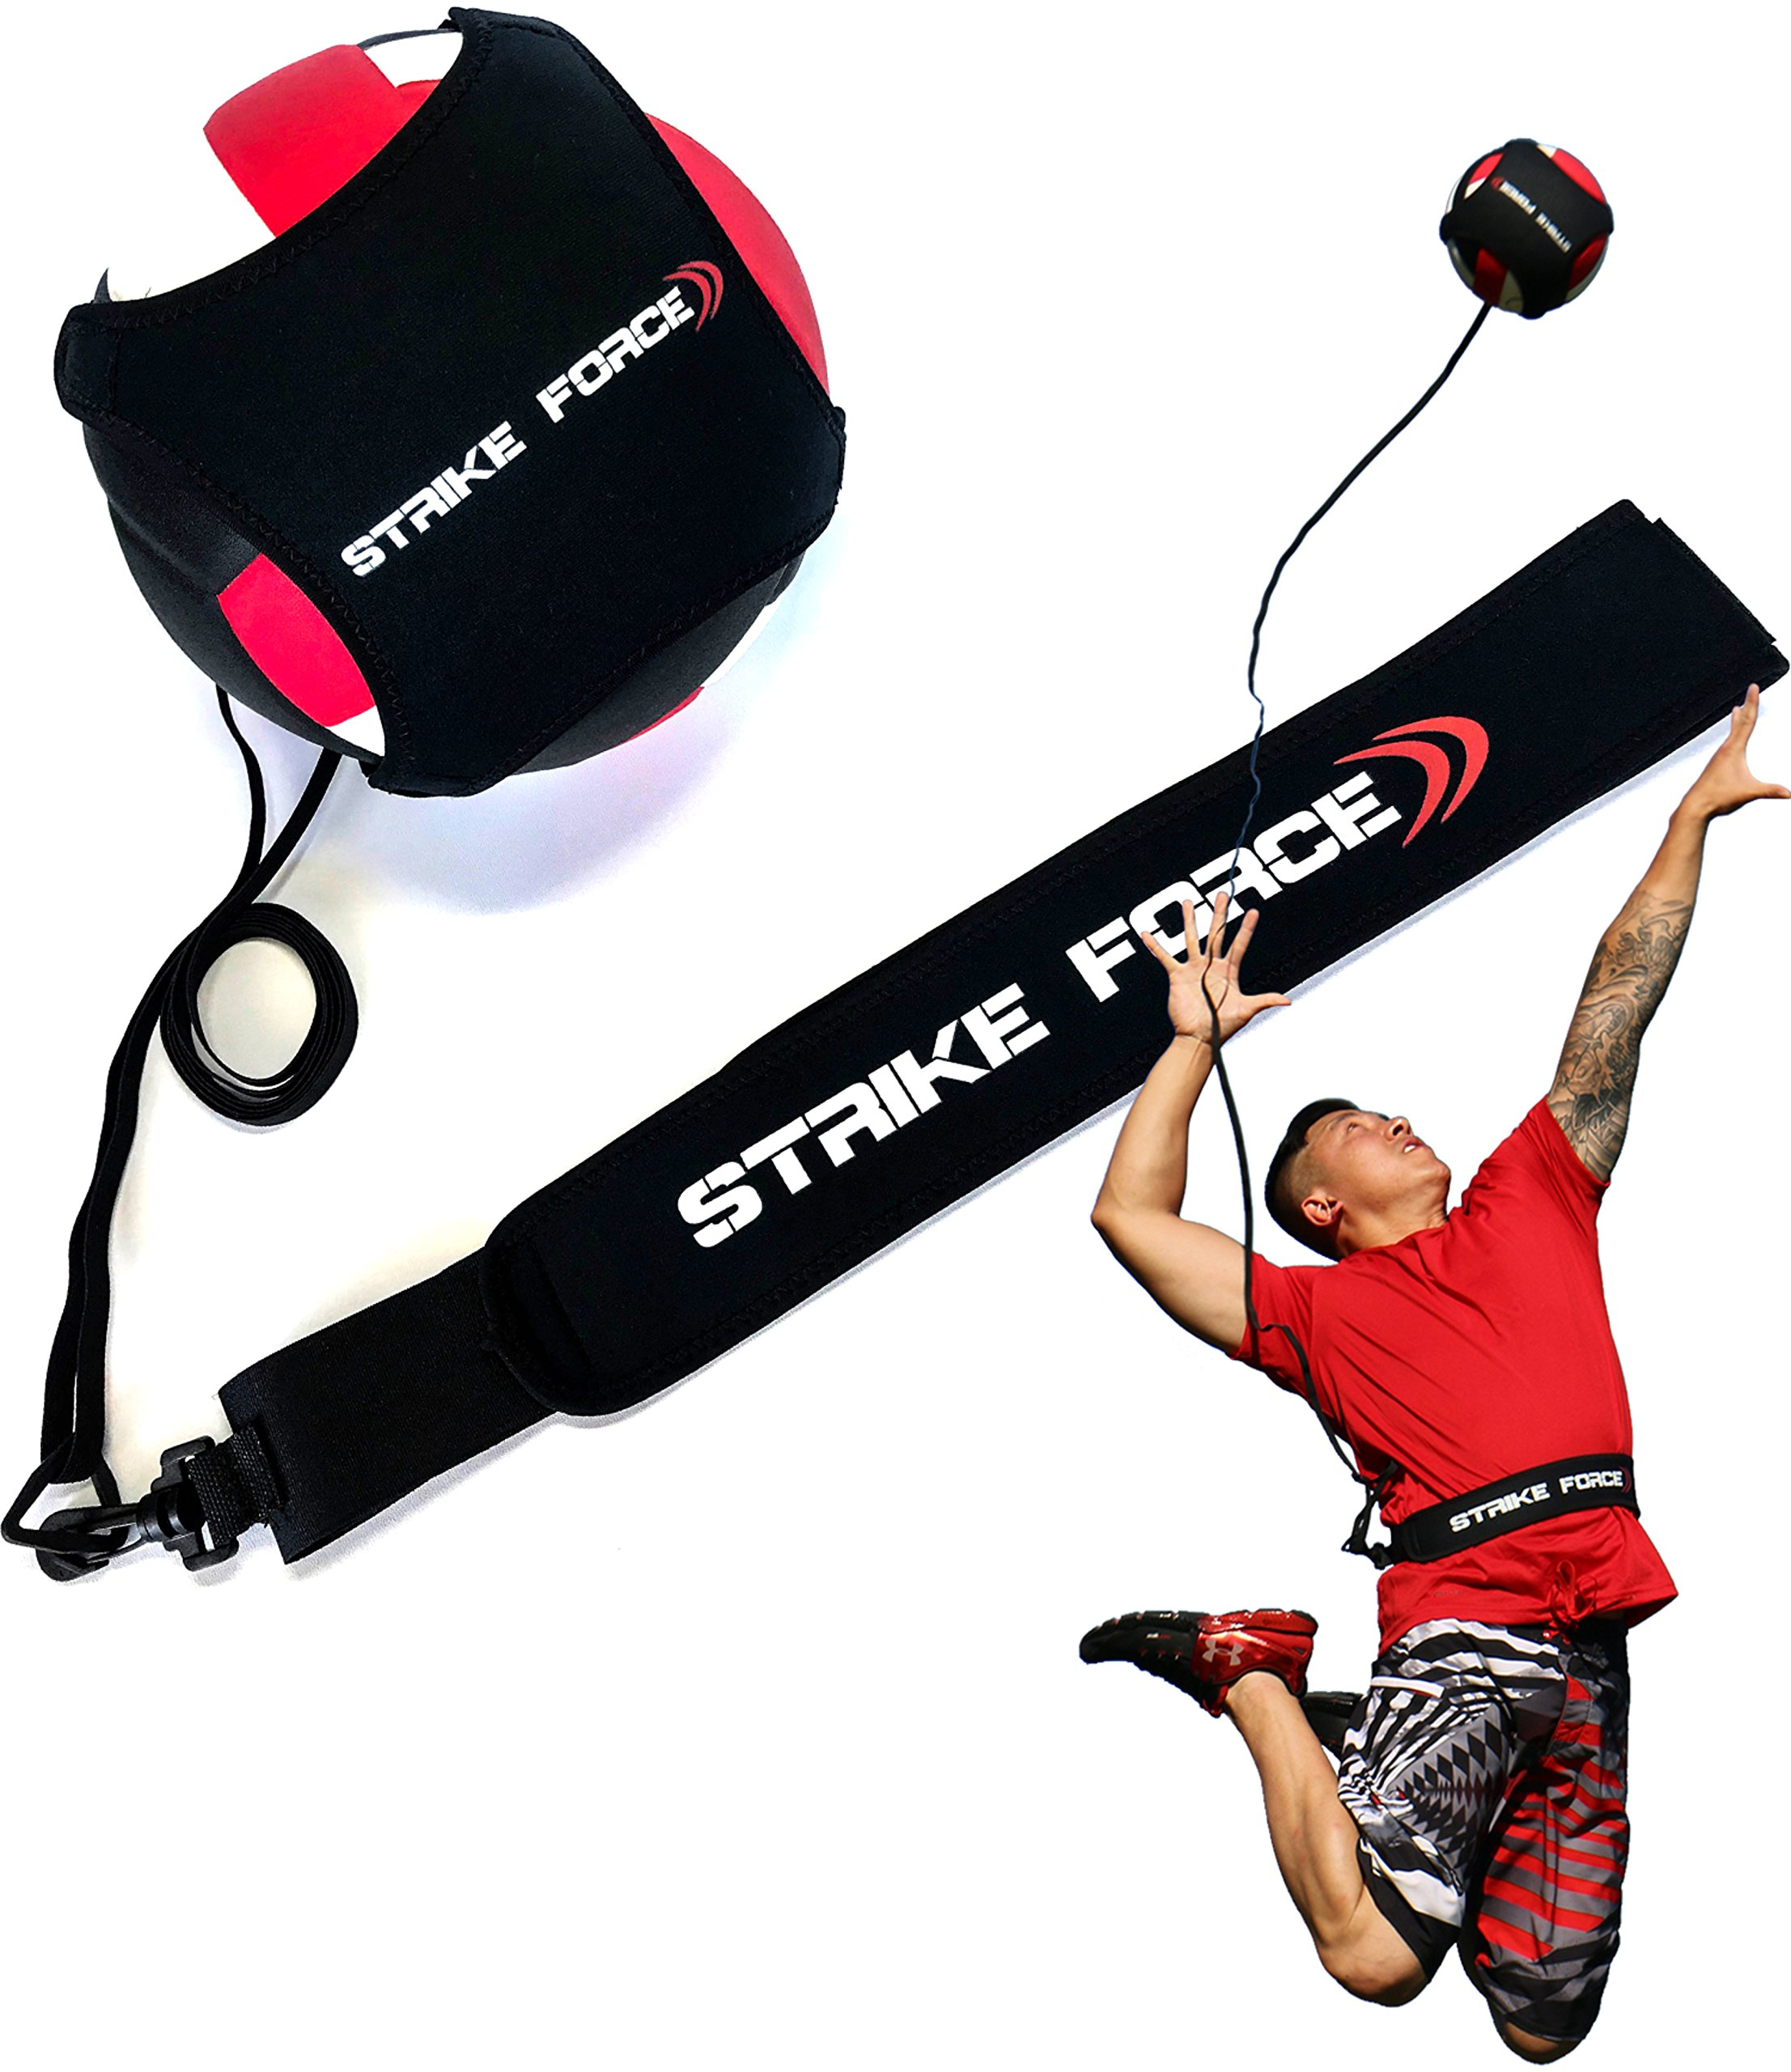 Volleyball Training Aid - Practice Equipment Aids Serving, Spiking, Setting, Arm Strength - Solo Vollyball Pal - by Strike Force by STRIKE FORCE